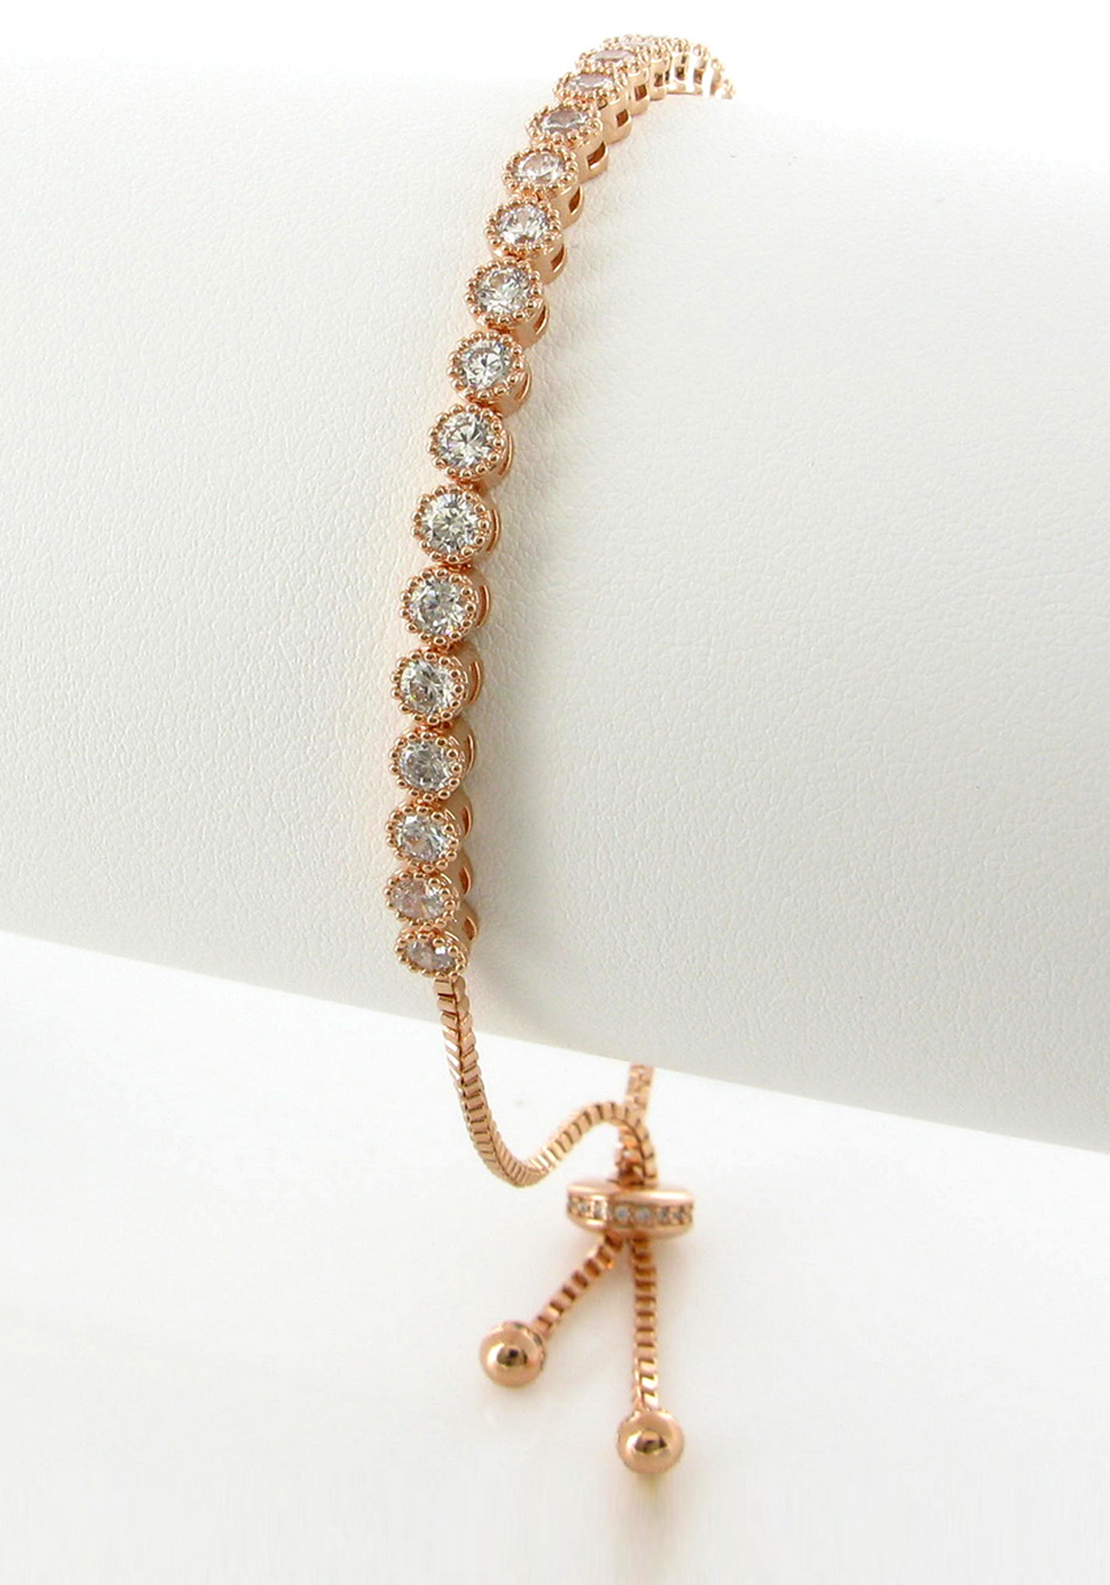 Nour London Round Cut Crystal Bracelet, Rose Gold